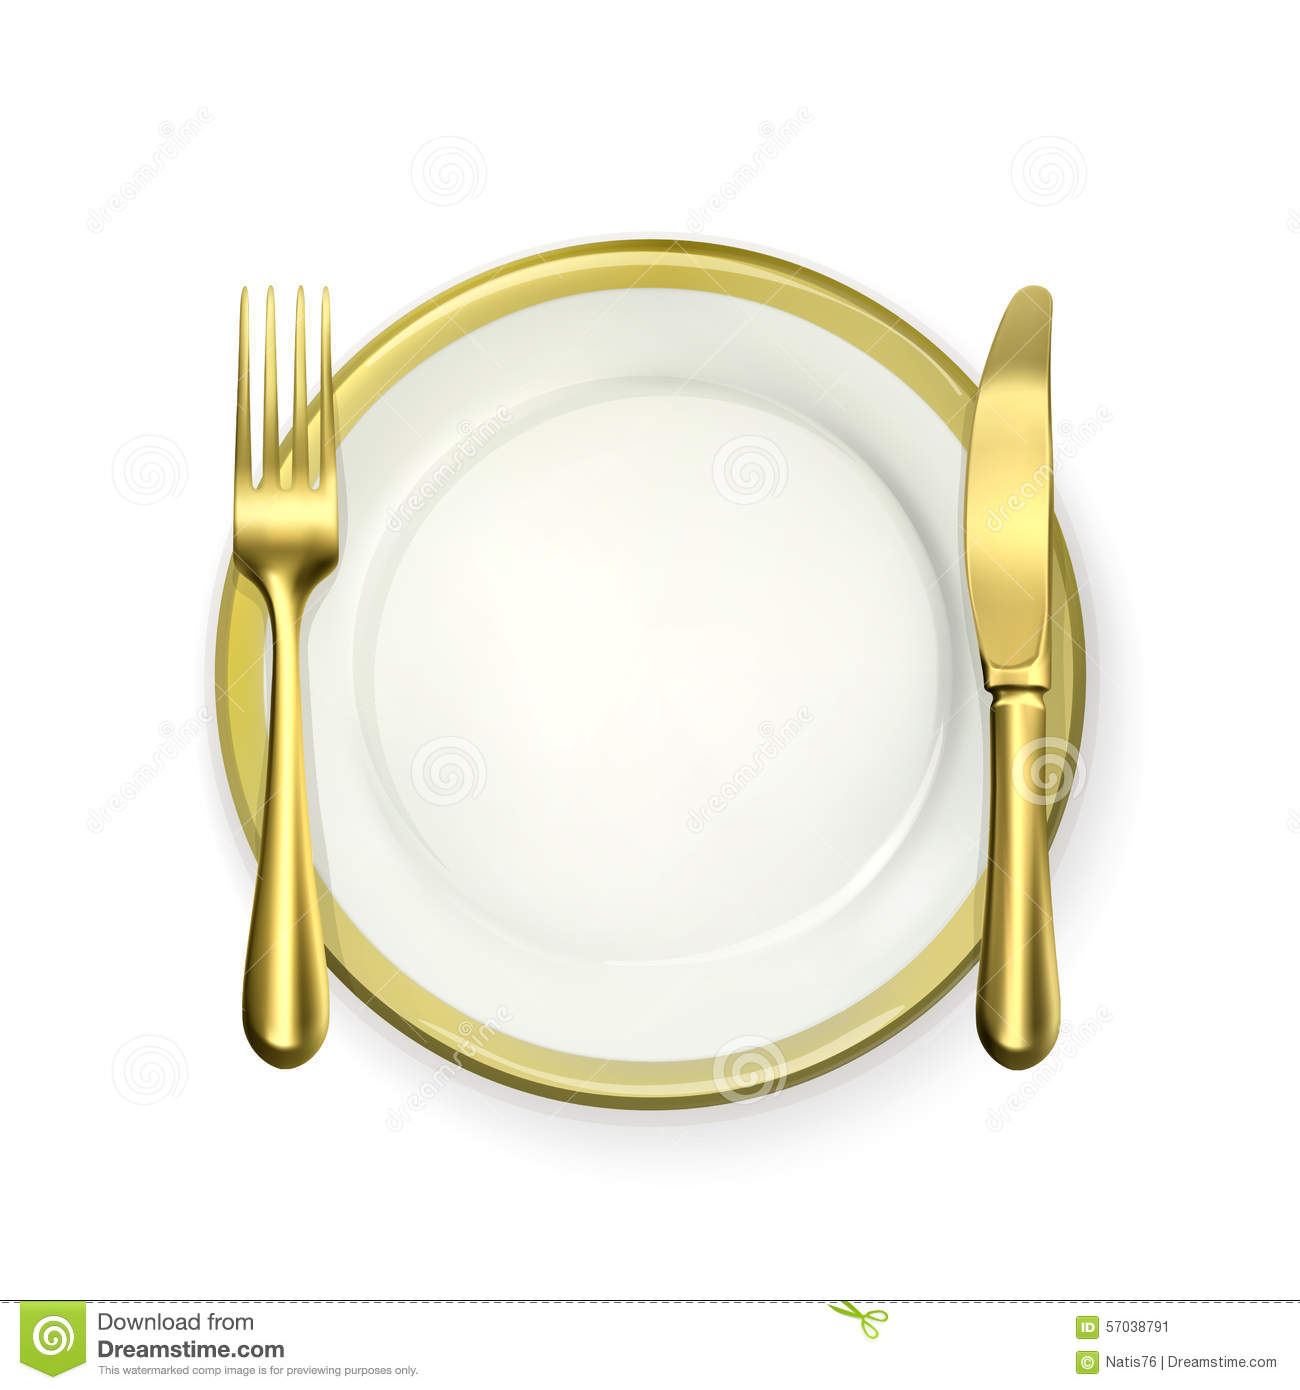 Dinner Setting gold dinner place setting stock vector - image: 57038791